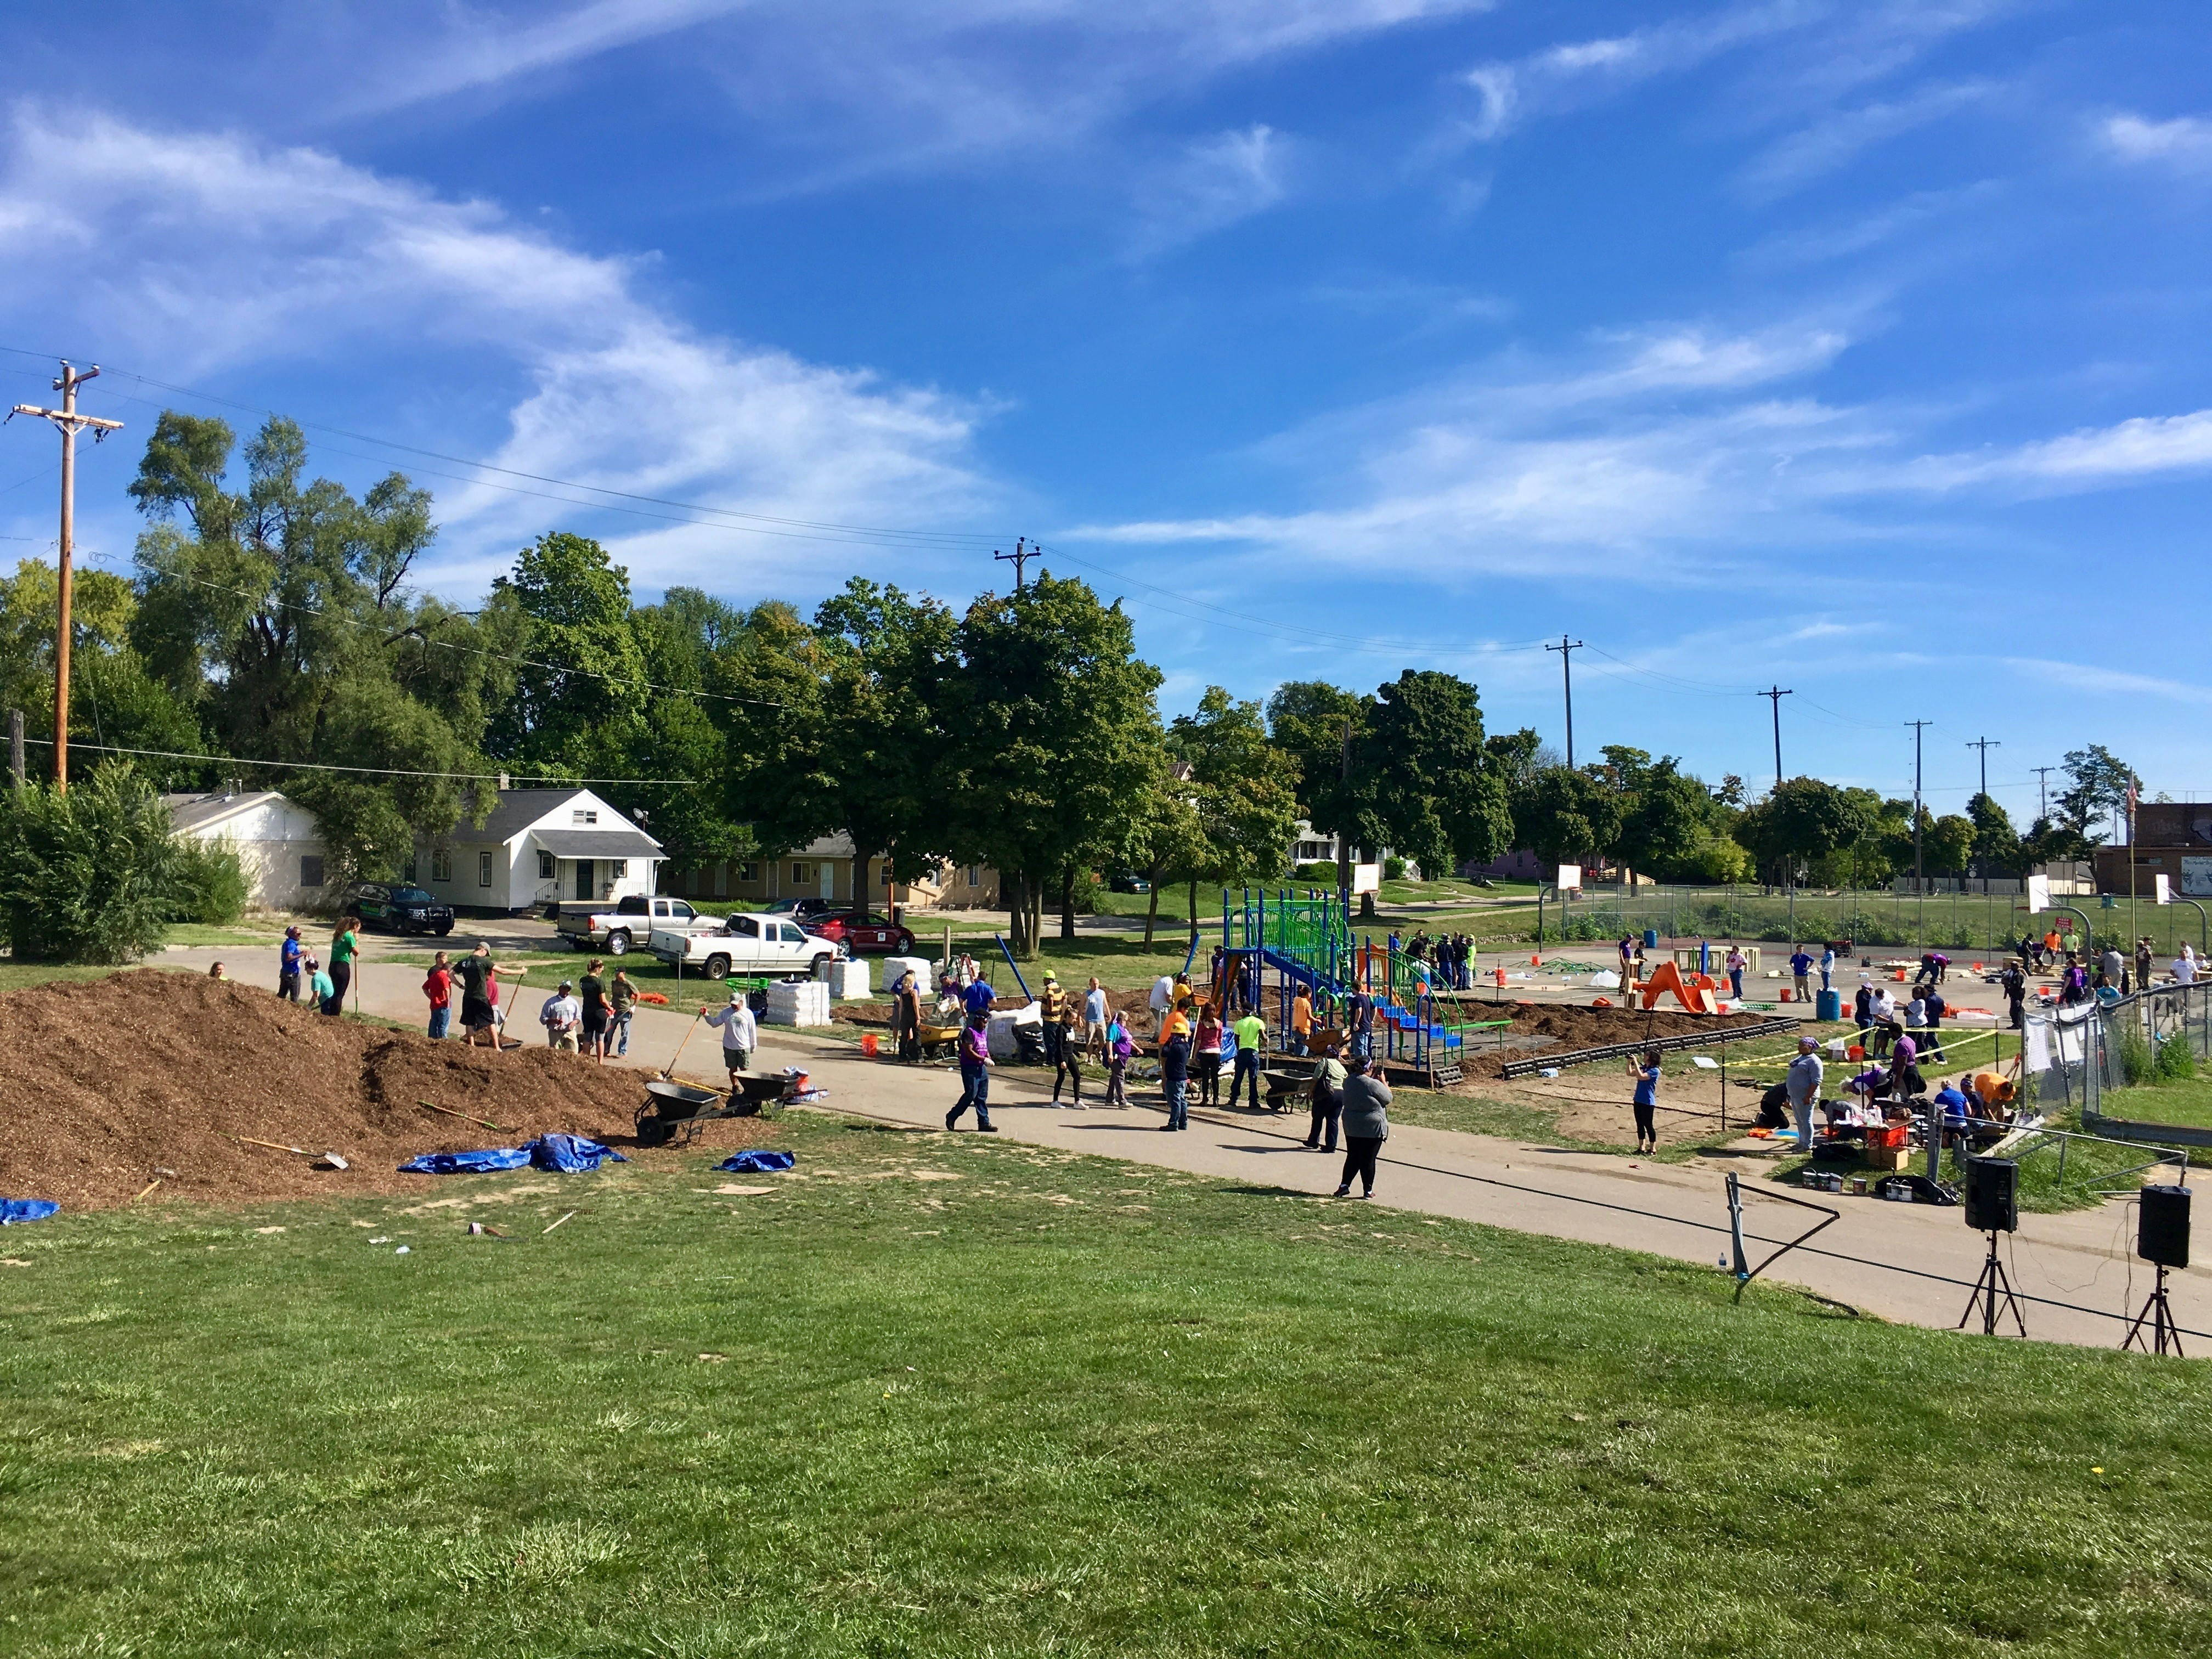 A group of people in the background work together to shovel dirt and put together a playground structure.